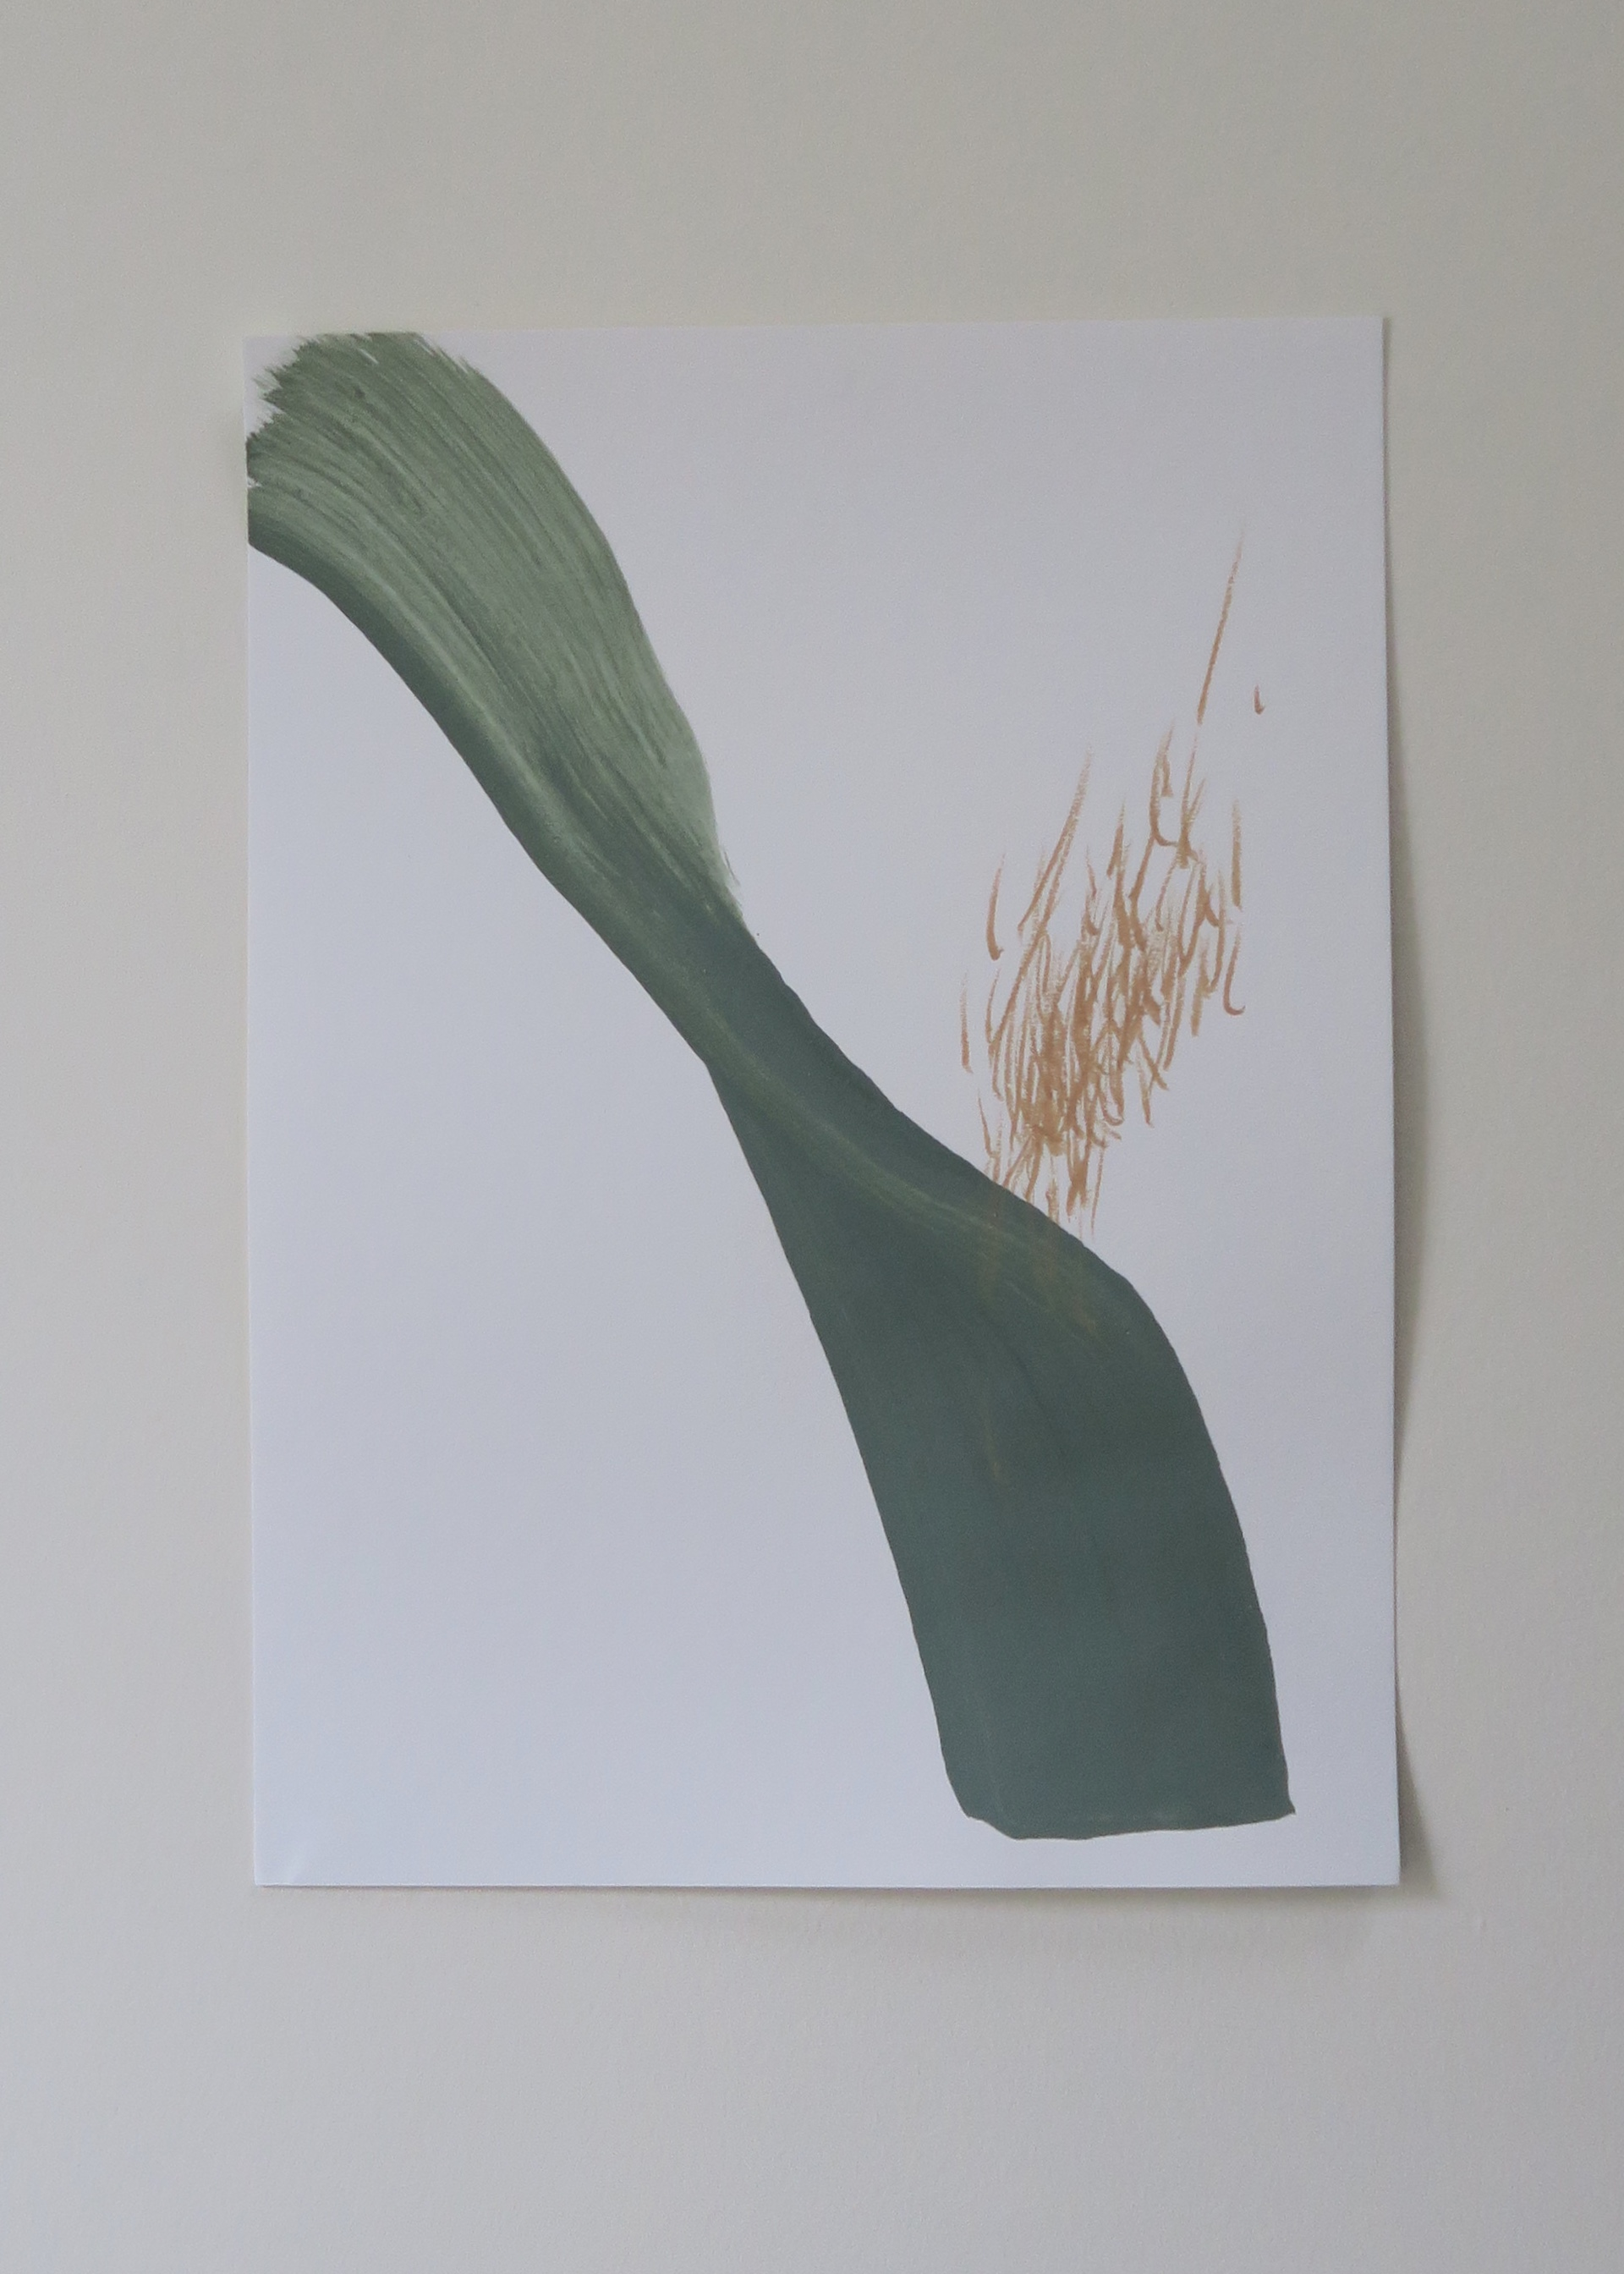 PAMPAS / Mixed media on paper / 11x15in / Ashley Opperman / 2019